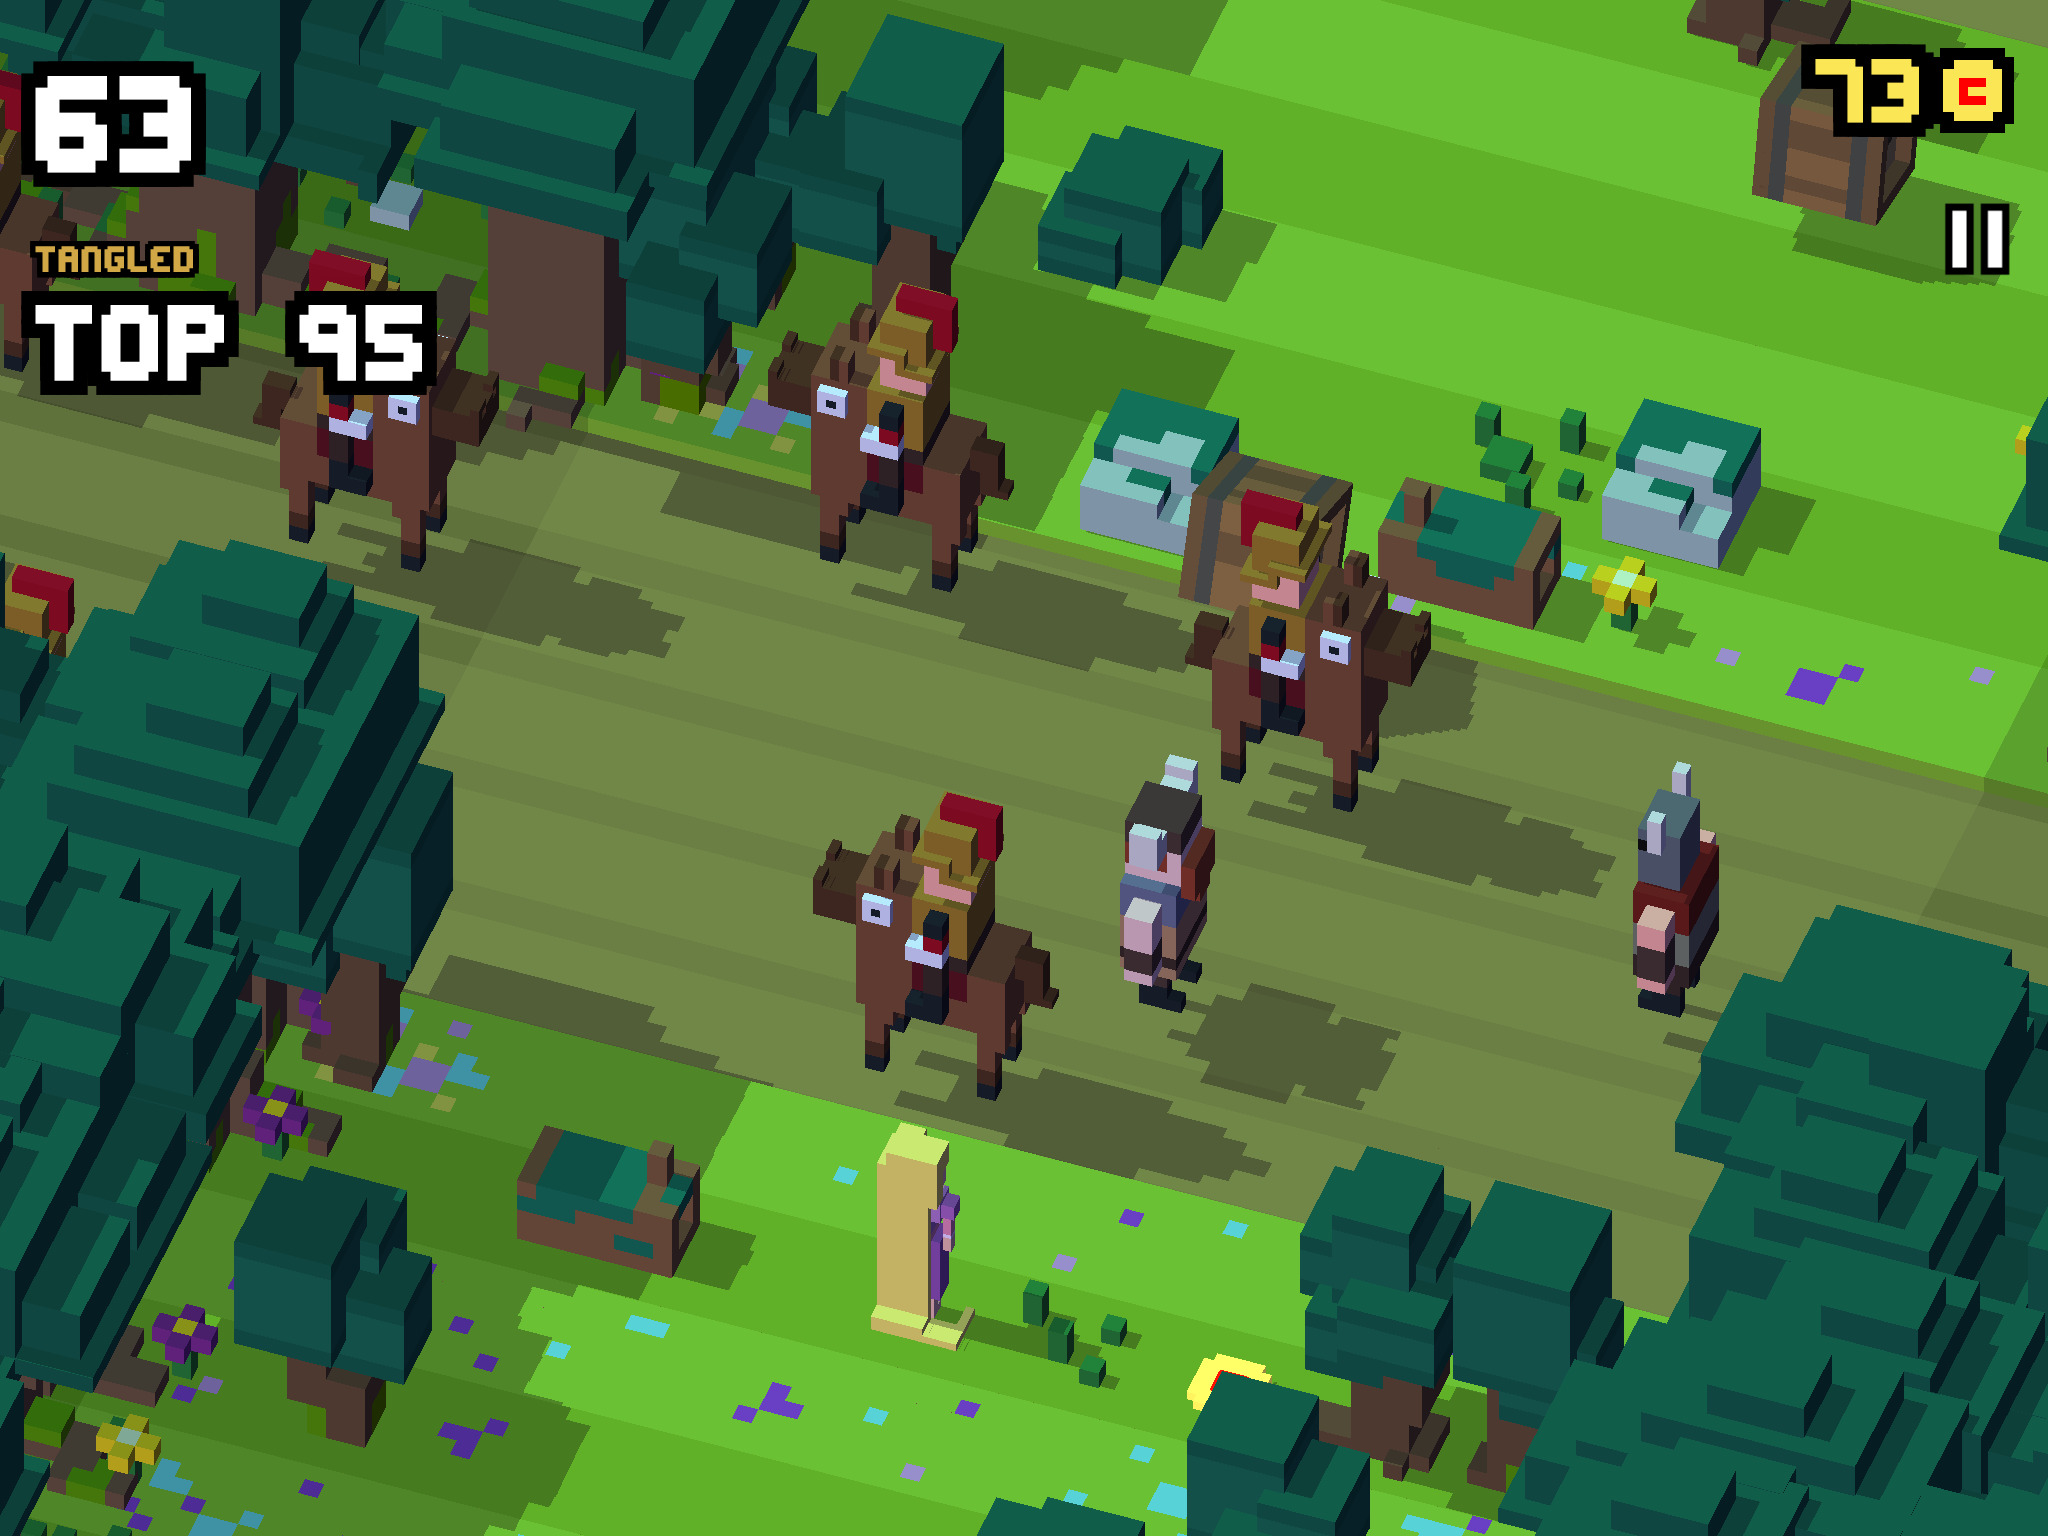 Disney Crossy Road - Why did the mouse, the princess, and the toy cowboy cross the road?